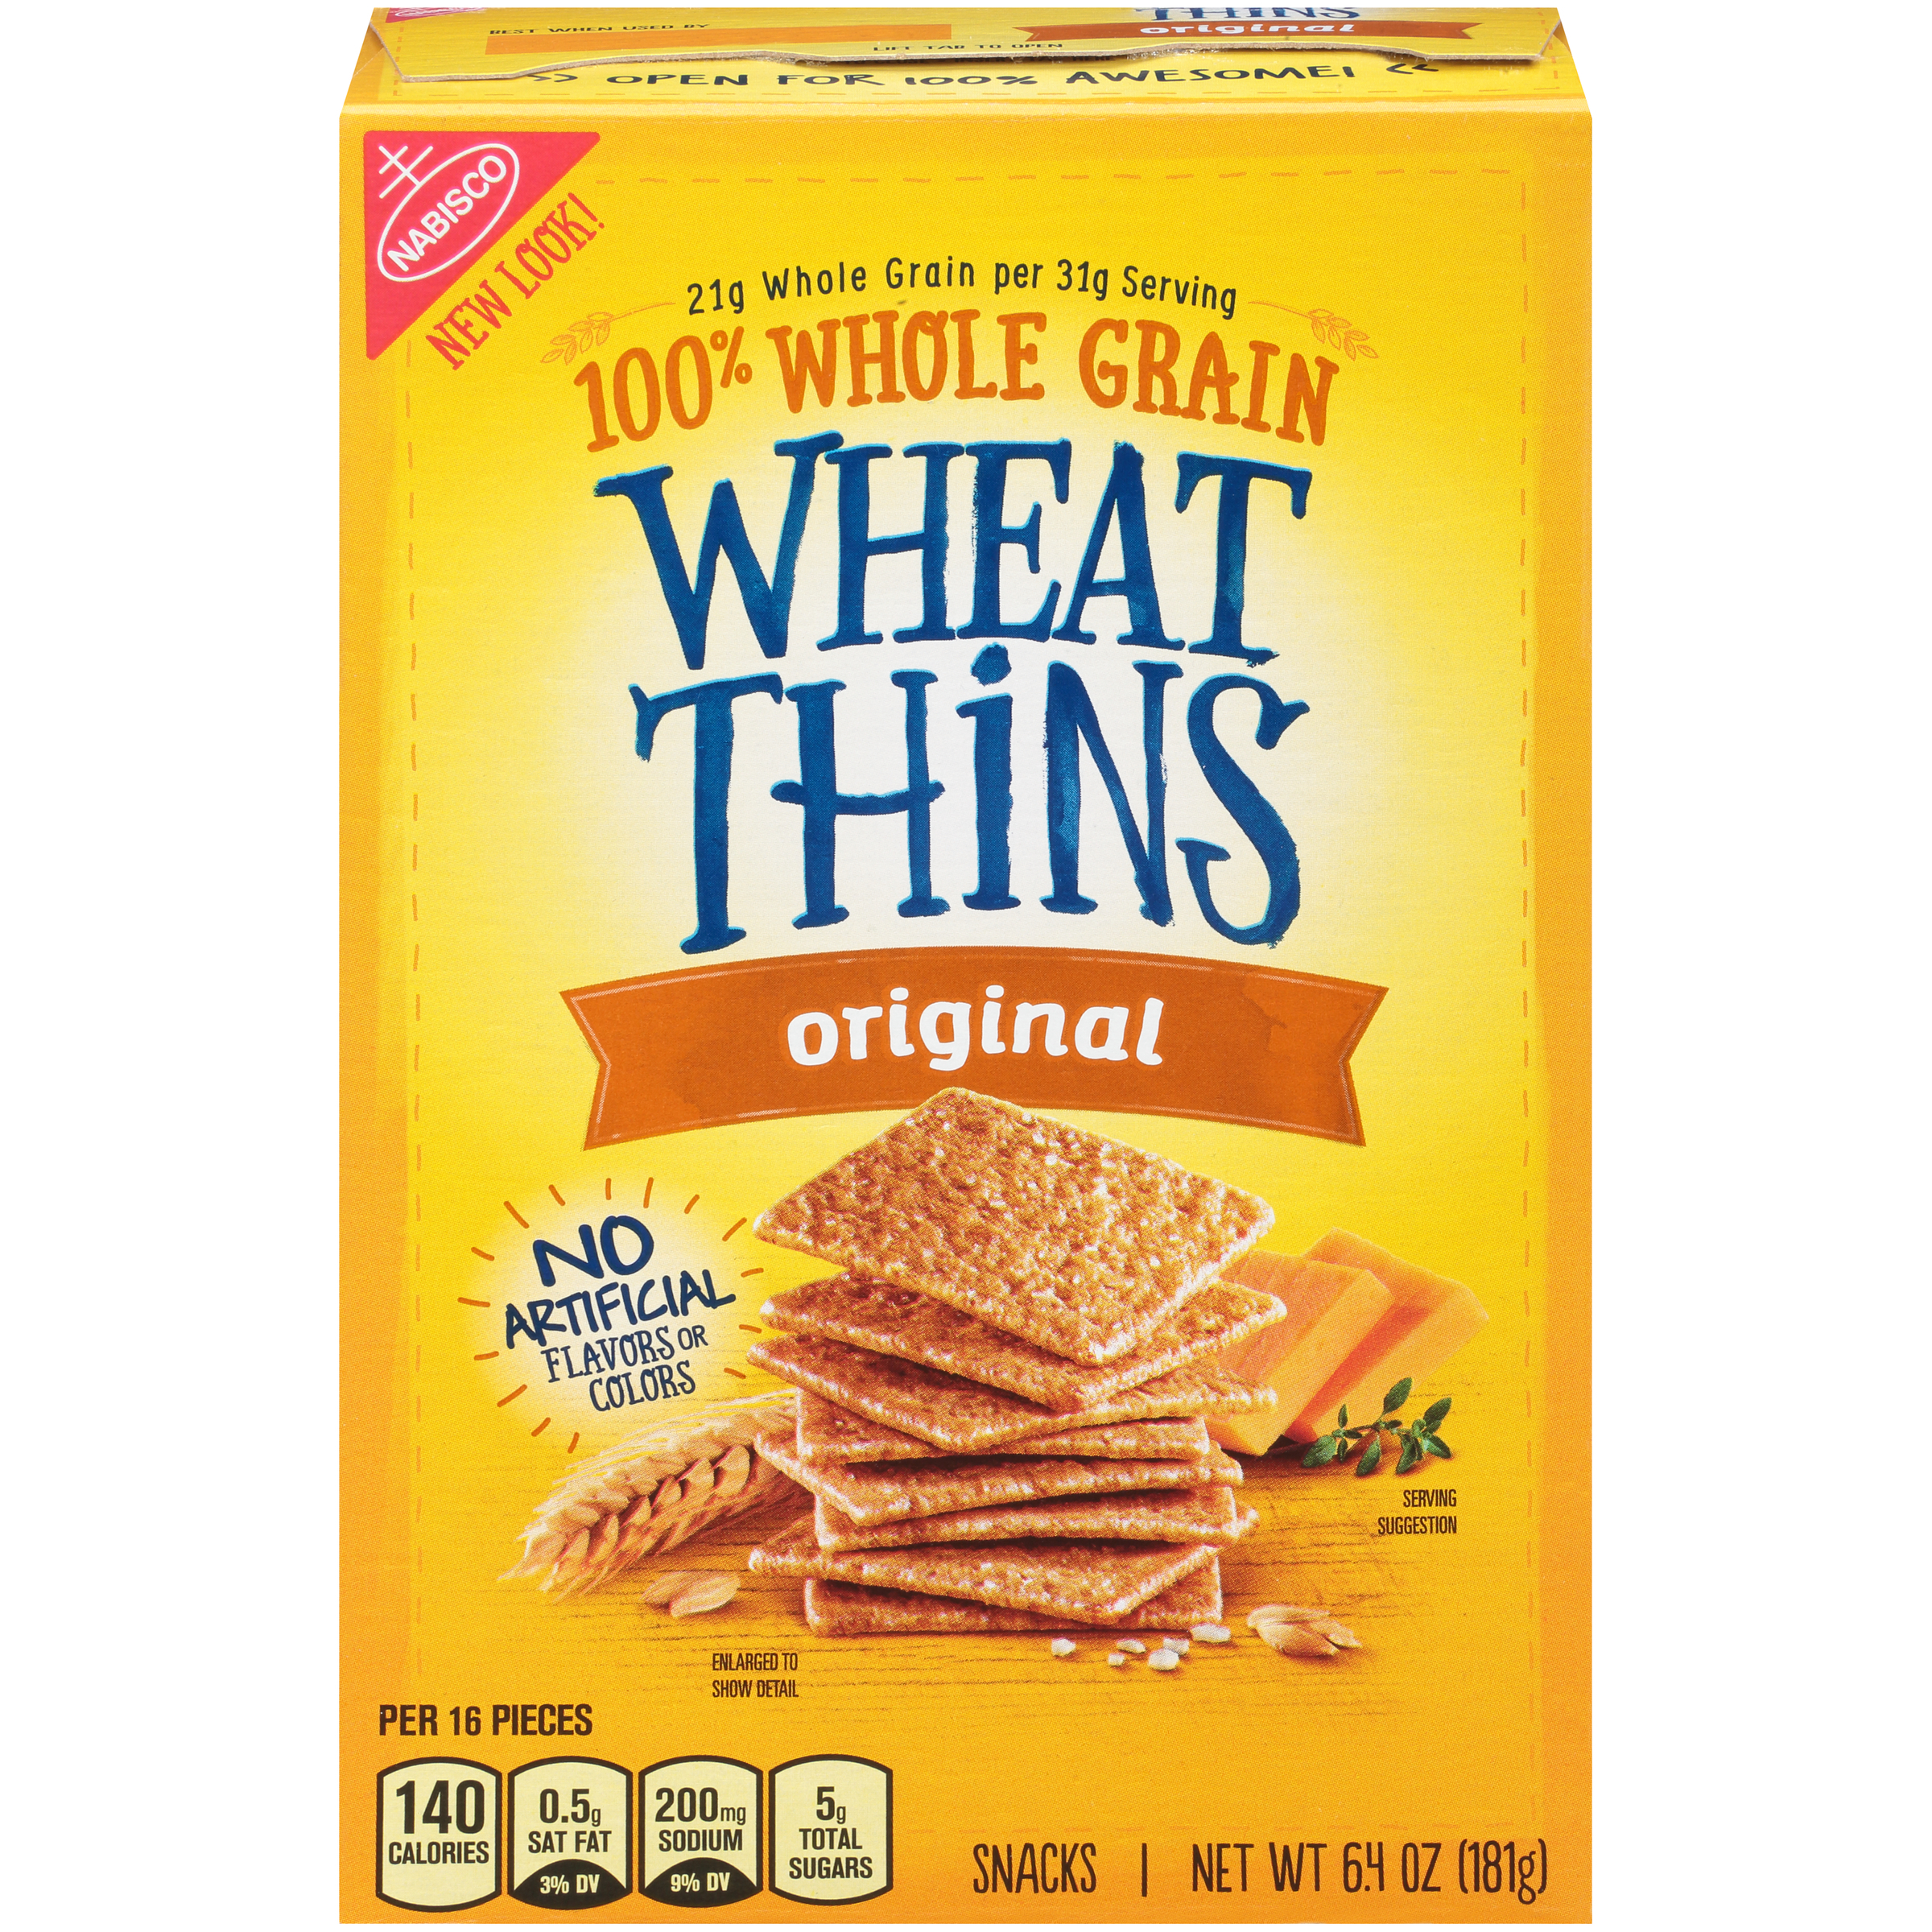 WHEAT THINS Original Crackers 6.4 oz